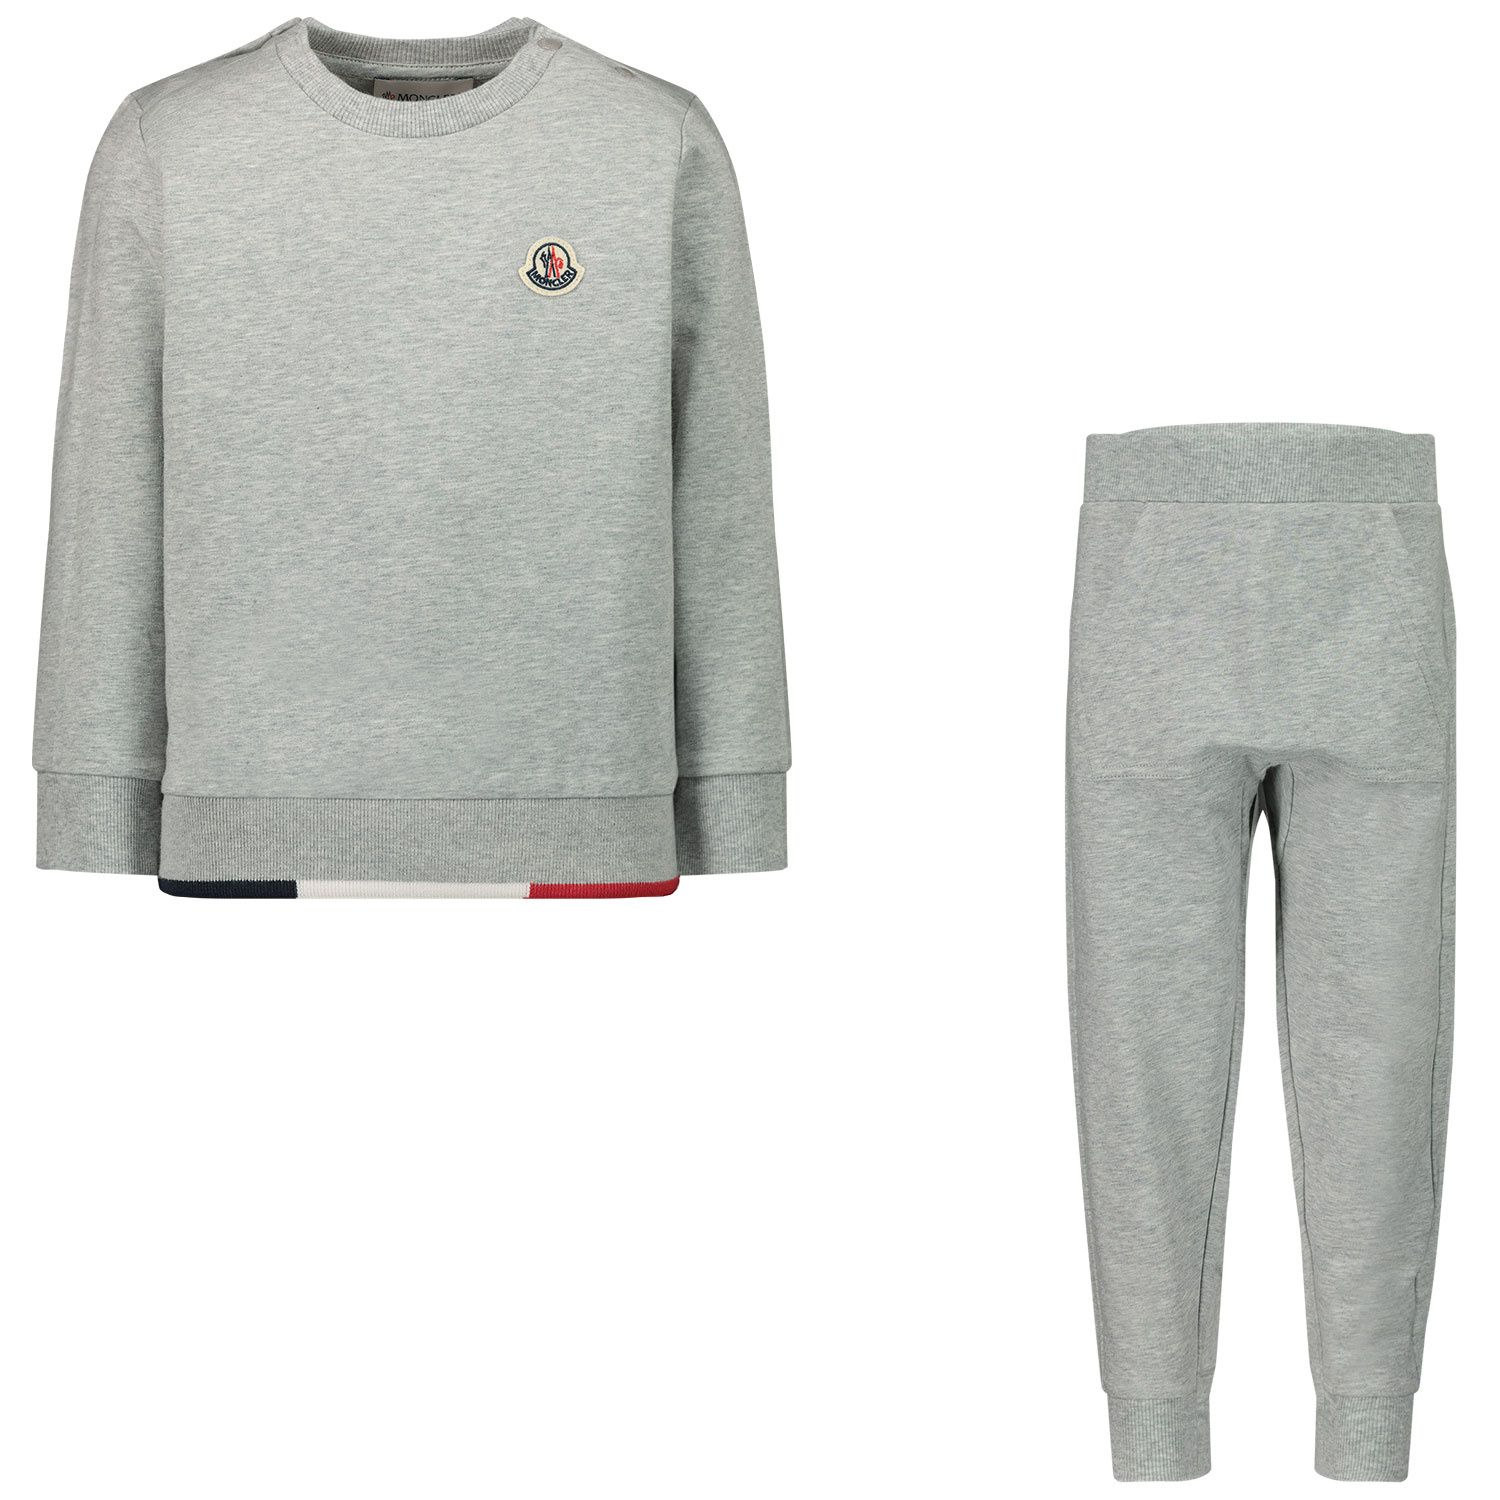 Picture of Moncler 8M73720 baby sweatsuit light gray